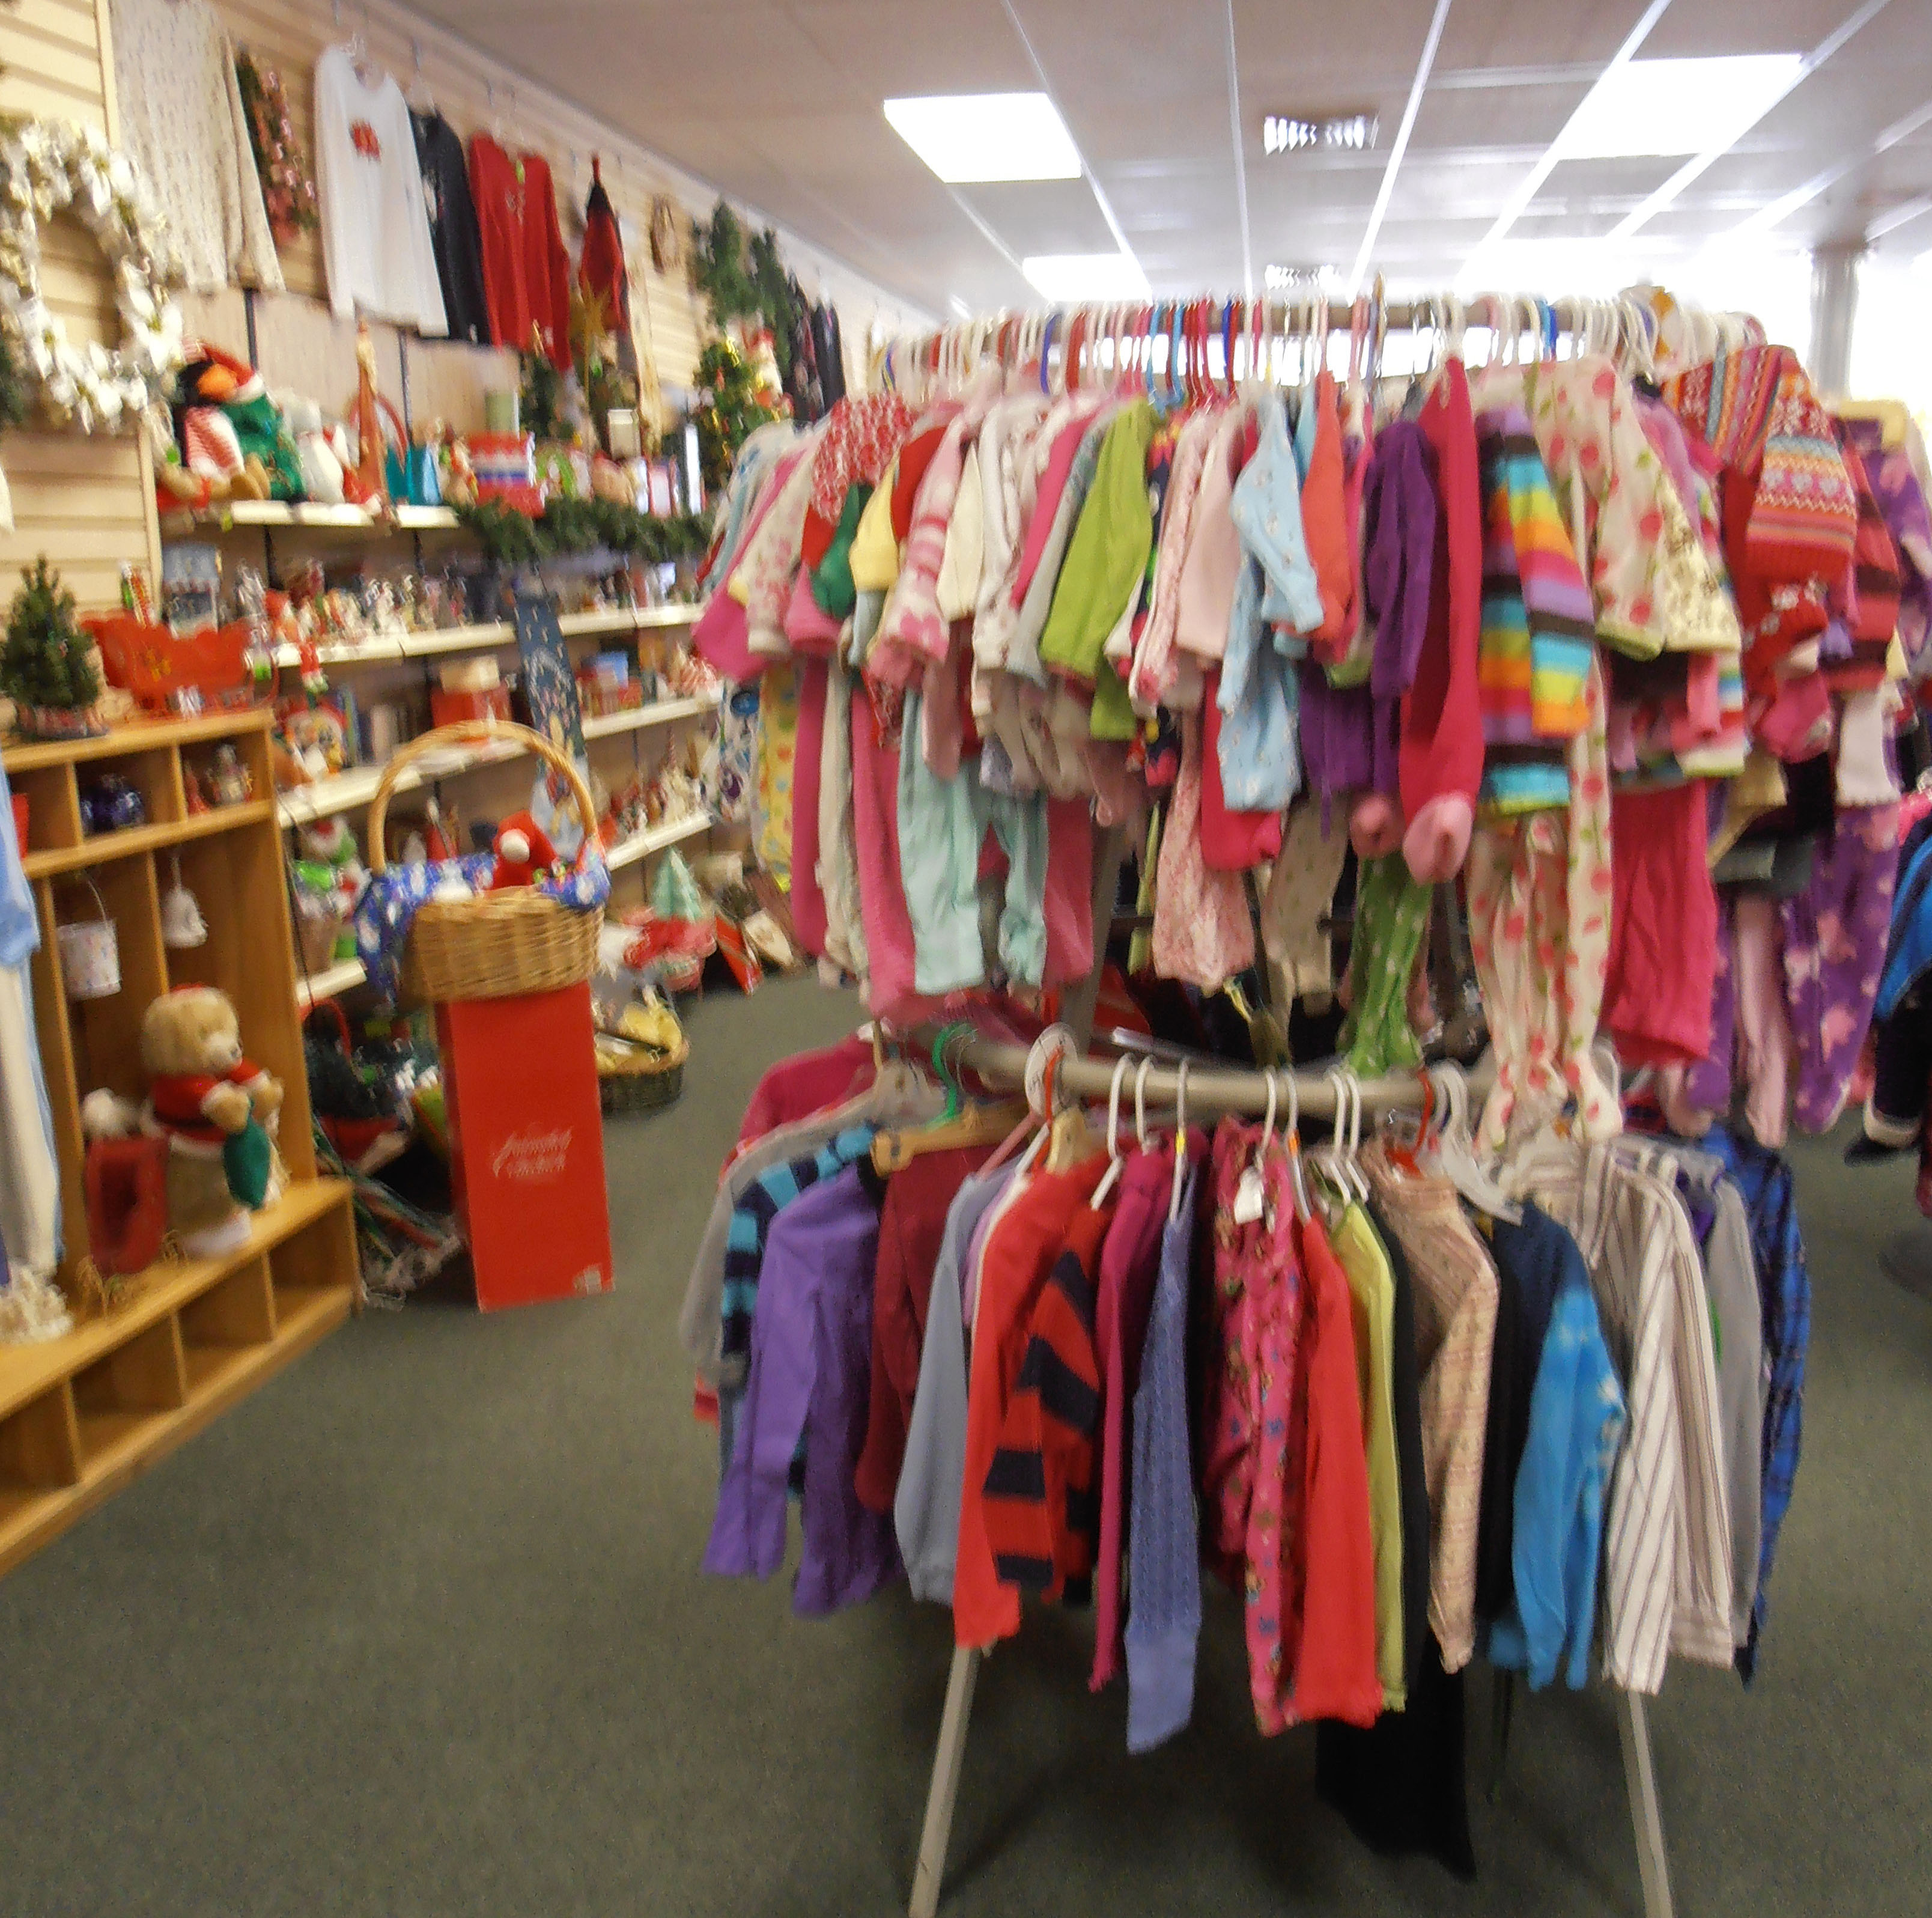 Emporium childrens clothes